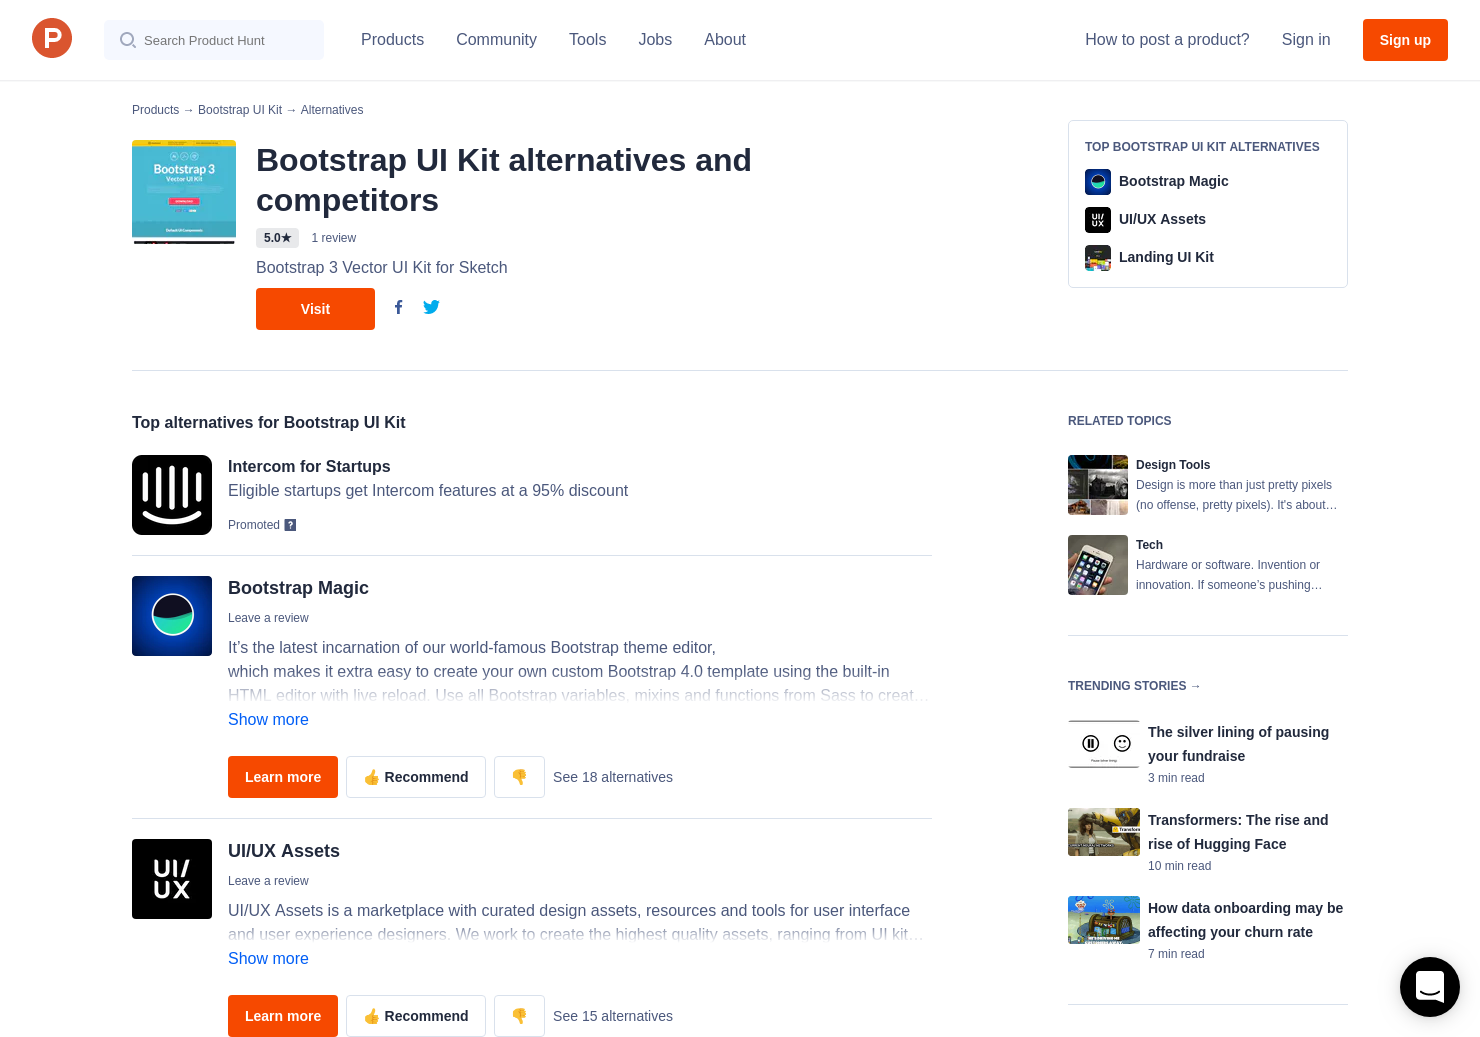 14 Alternatives to Bootstrap UI Kit | Product Hunt